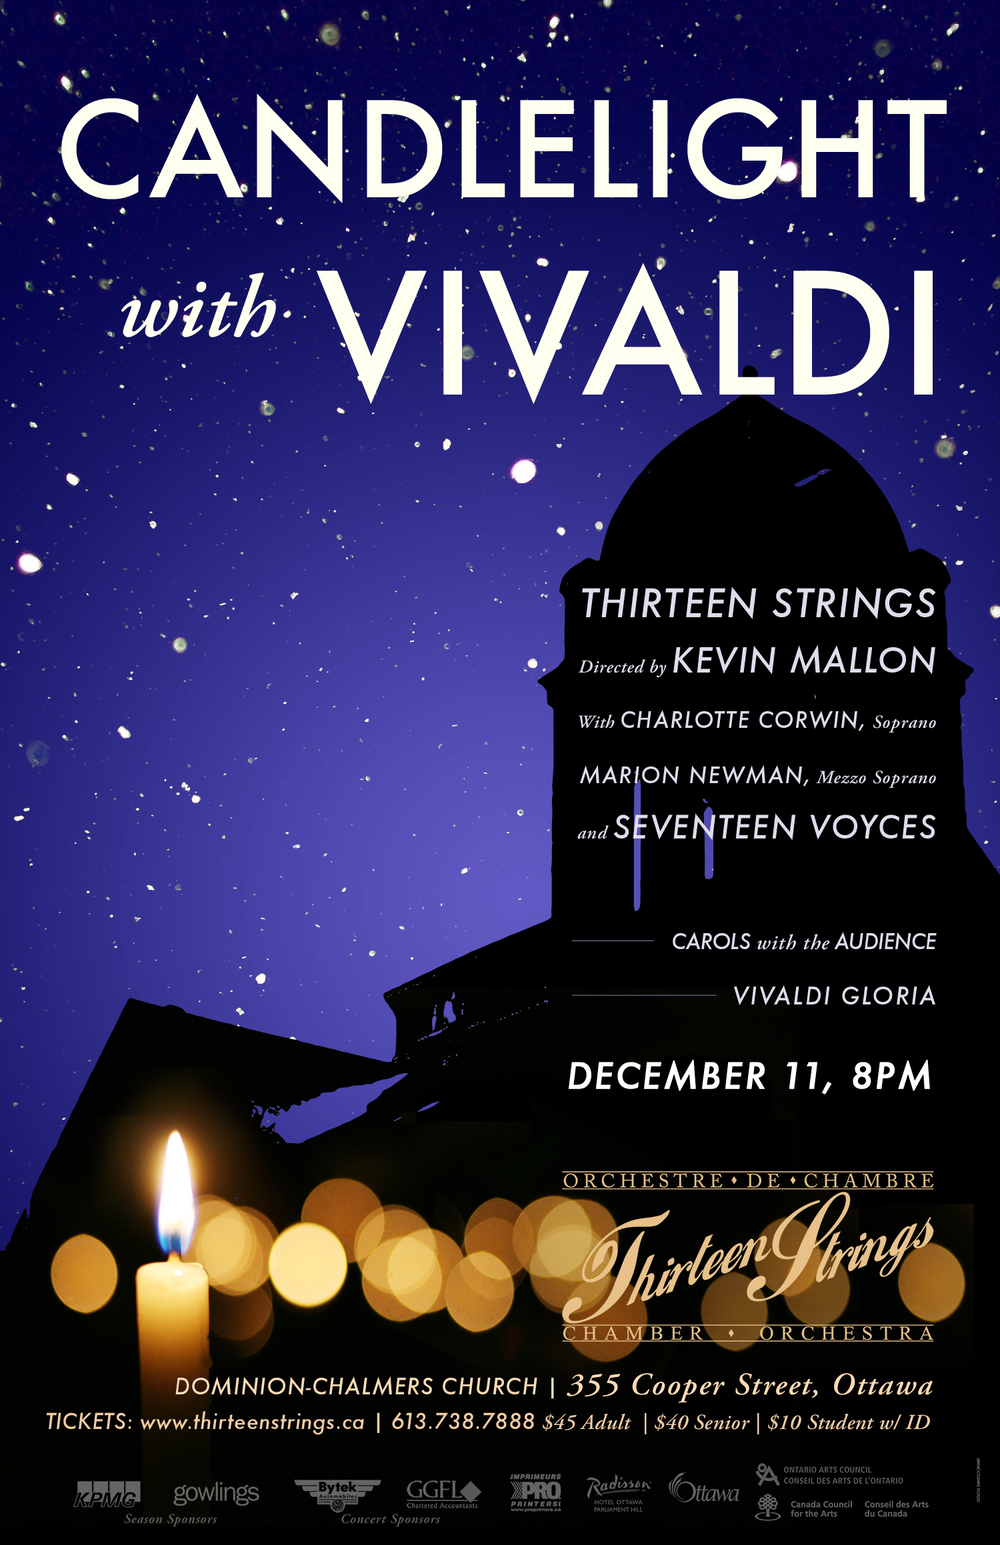 13Strings_Candlelight_Flyer.jpg